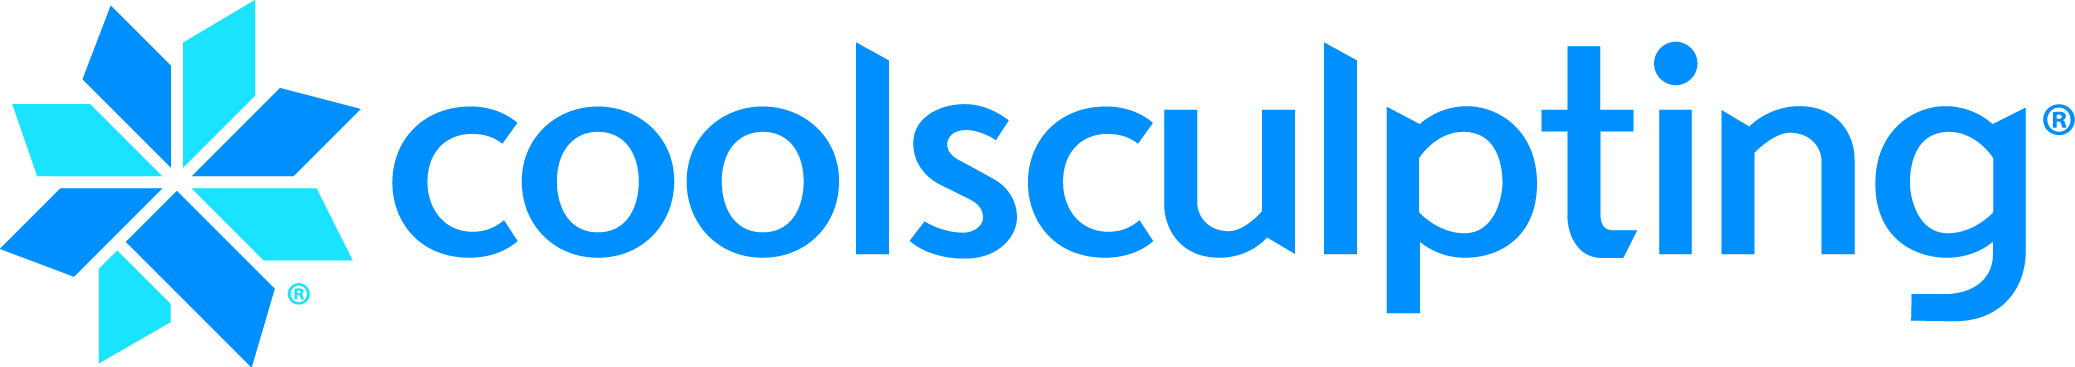 4-logo-with-dark-blue-font.jpg